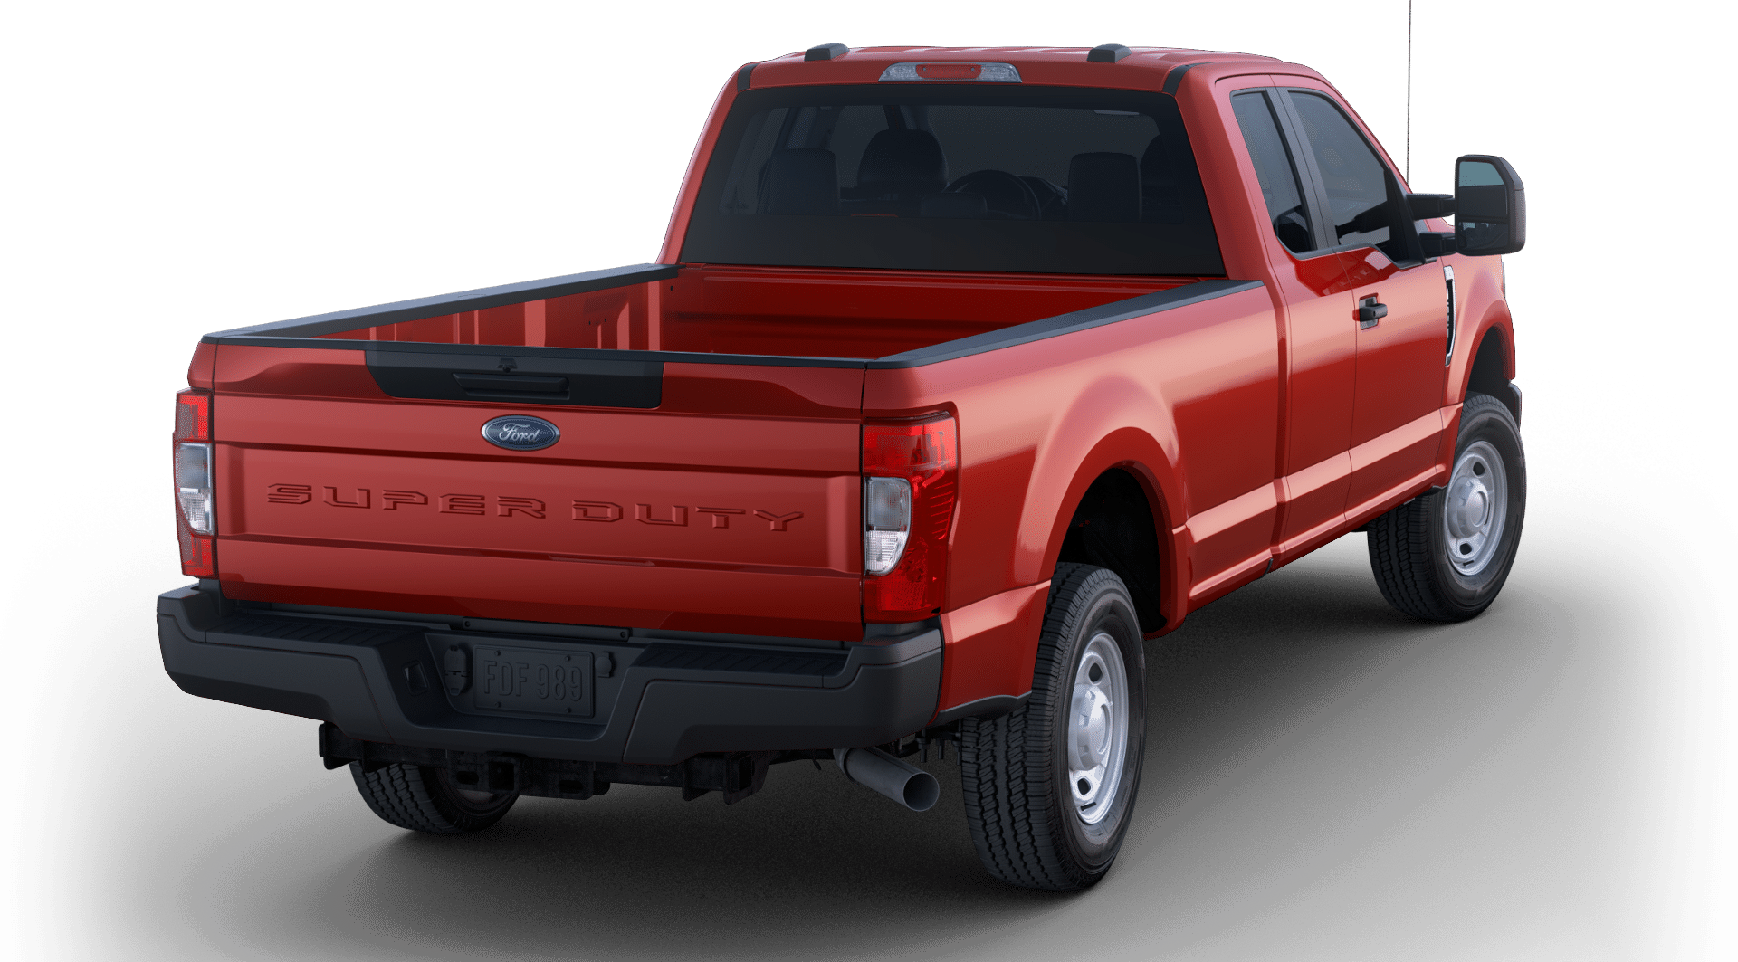 Ford F-250 2020 XL 6.2 V8 SOHC FFV Бензин 6-ст. АКПП TorqShift® Heavy-Duty SelectShift-G™ Полный